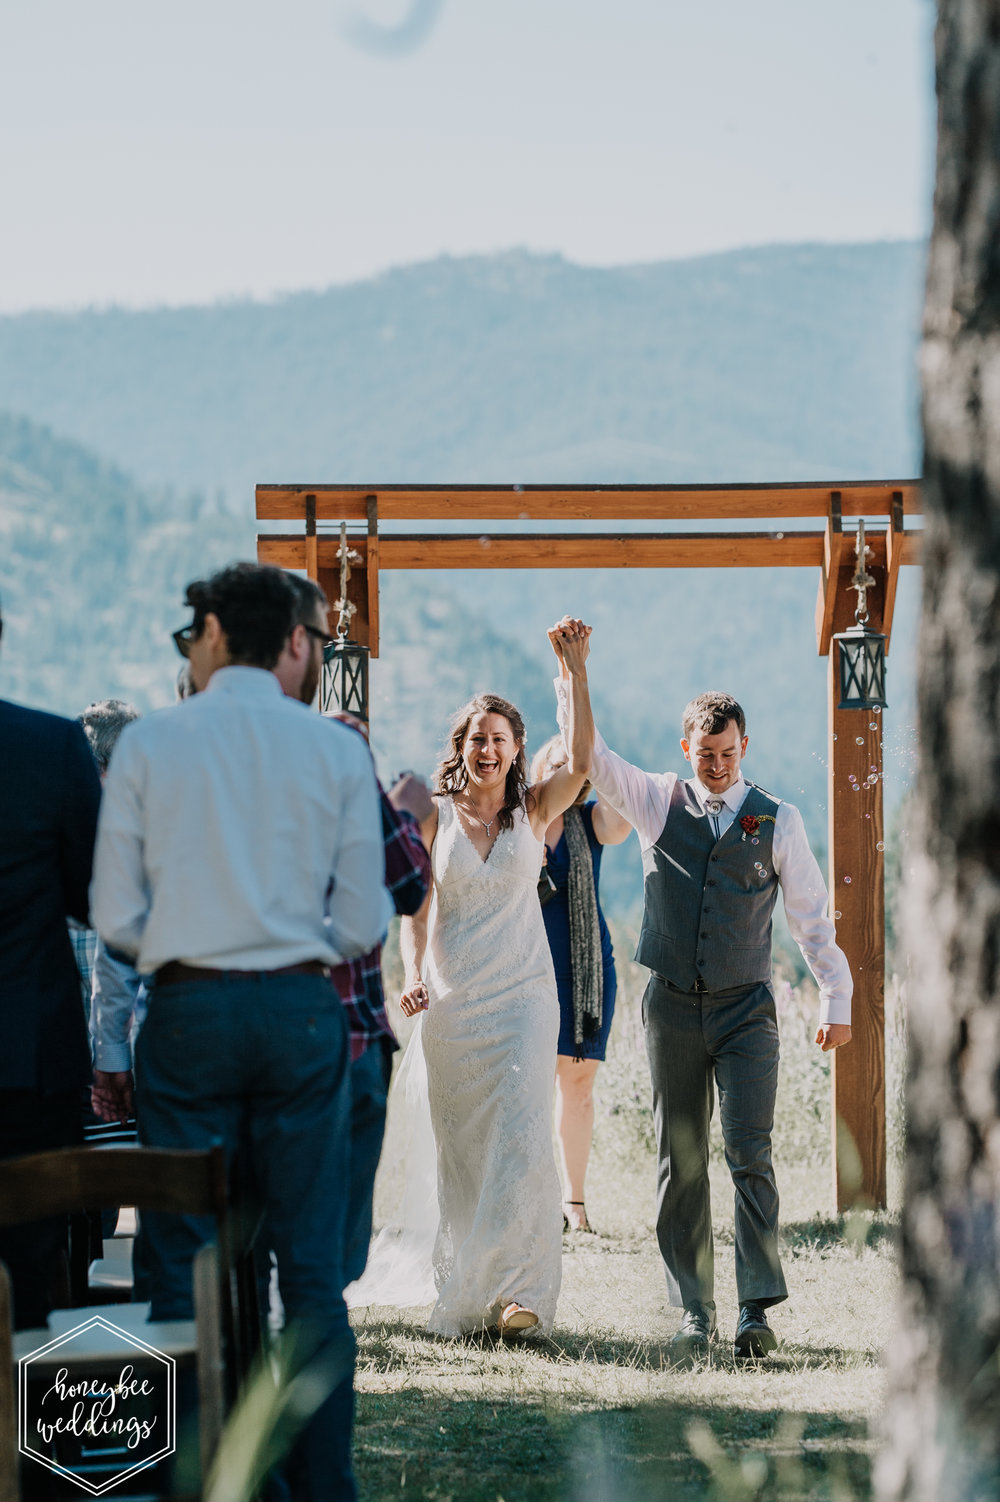 367 White Raven Wedding_Montana Wedding Photographer_Honeybee Weddings_ Meghan Maloney + Arza Hammond 2018-8831.jpg